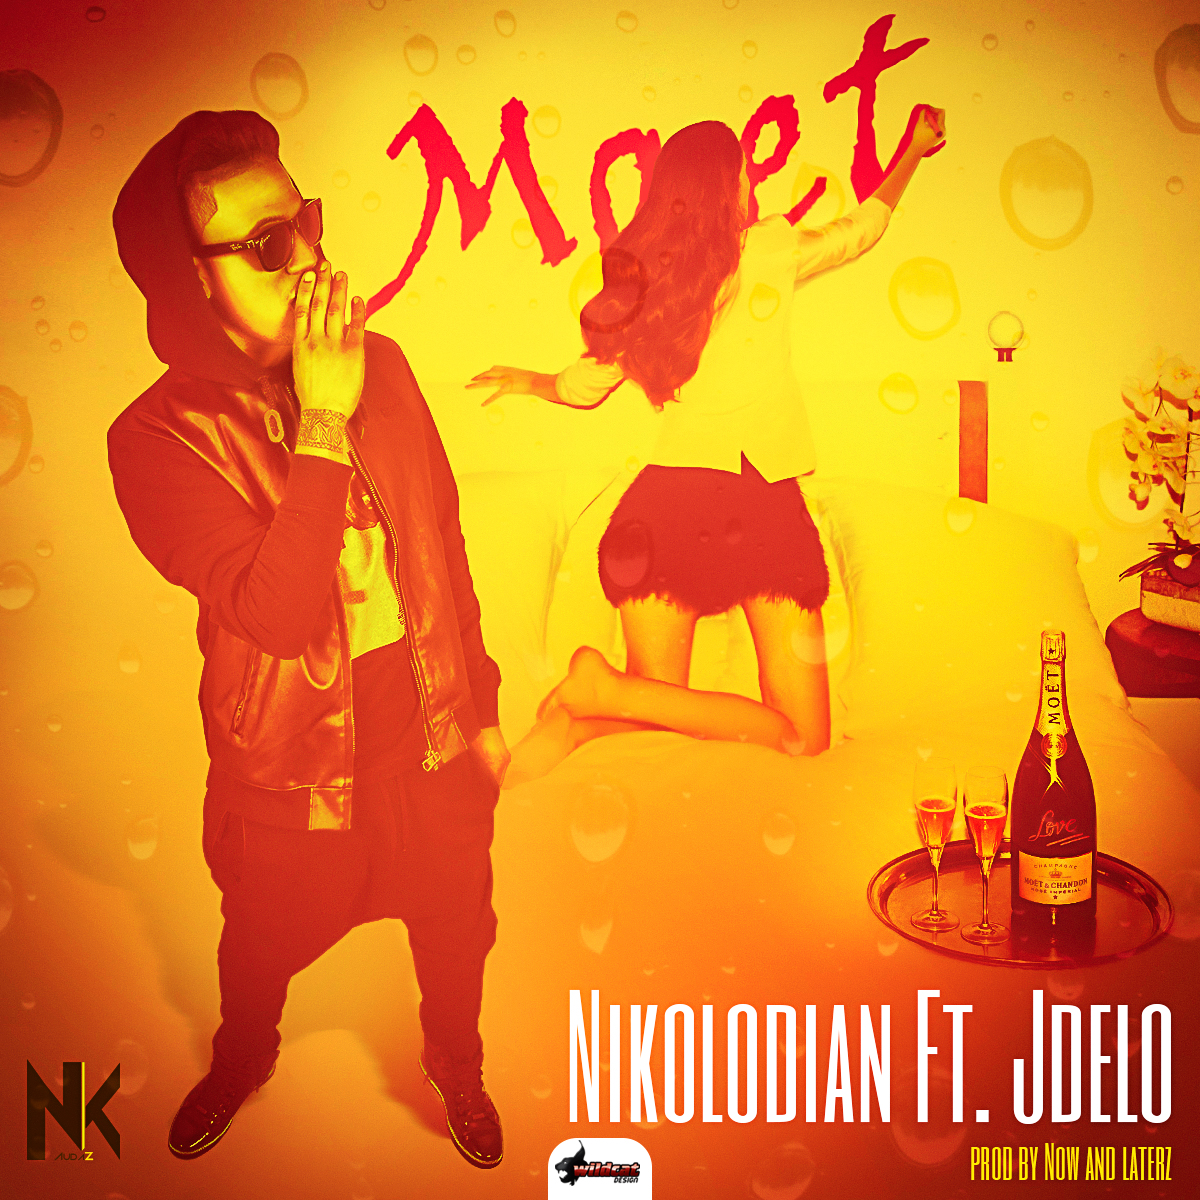 Nikolodian - Moet (Codeine Crazy Spanish Remix)